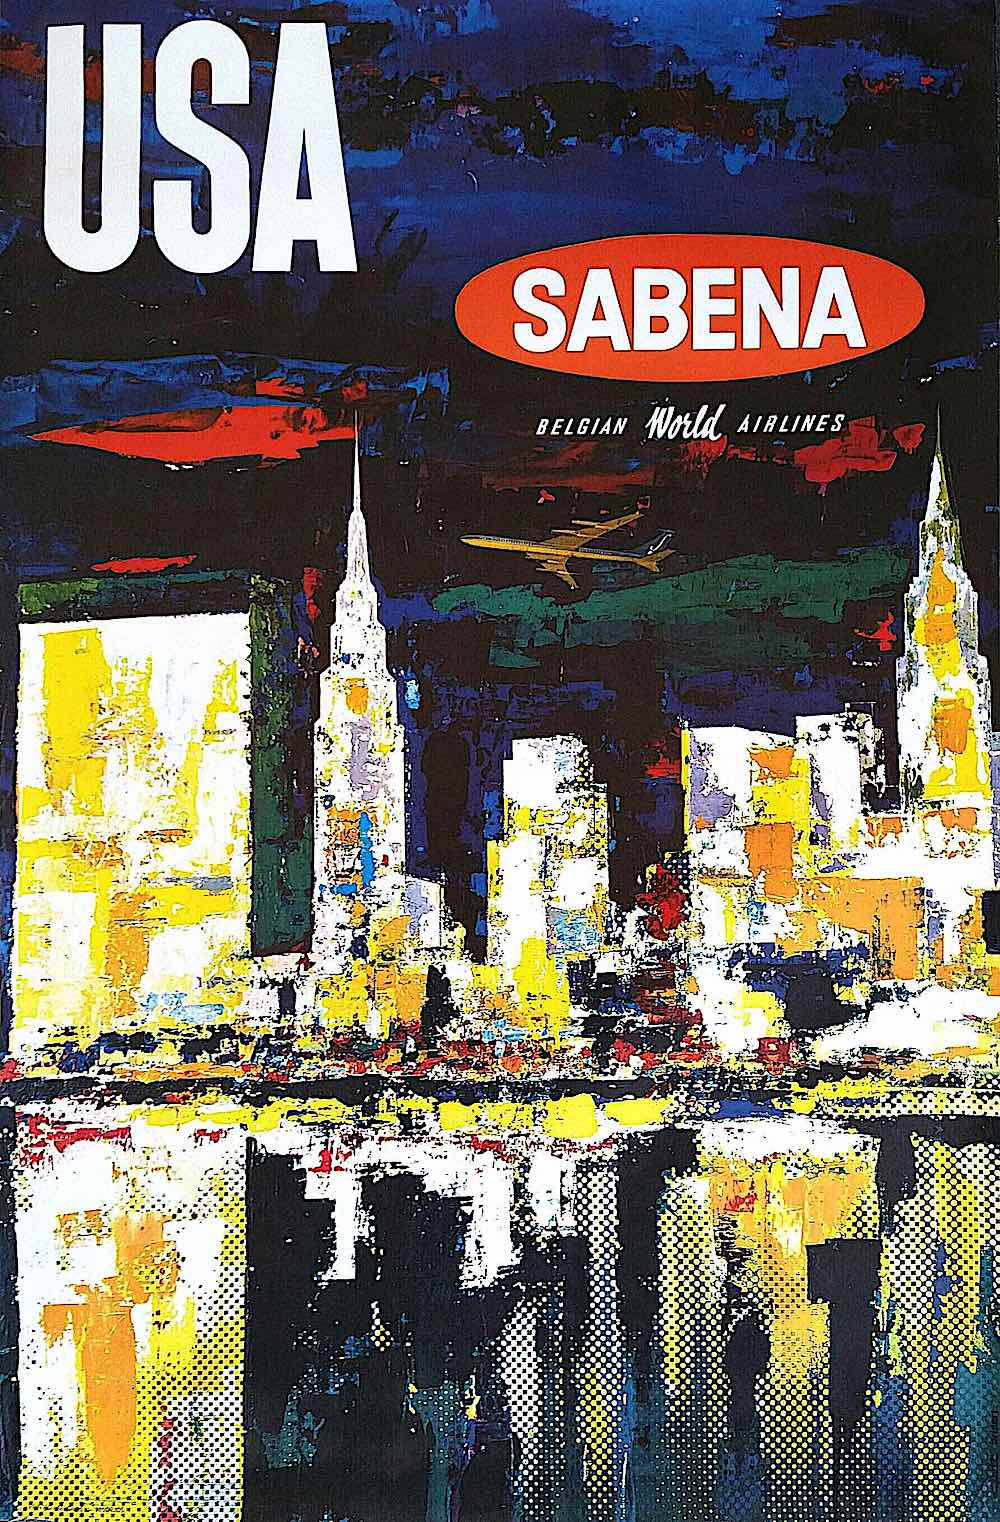 Sabina airline poster, a city skyline at night